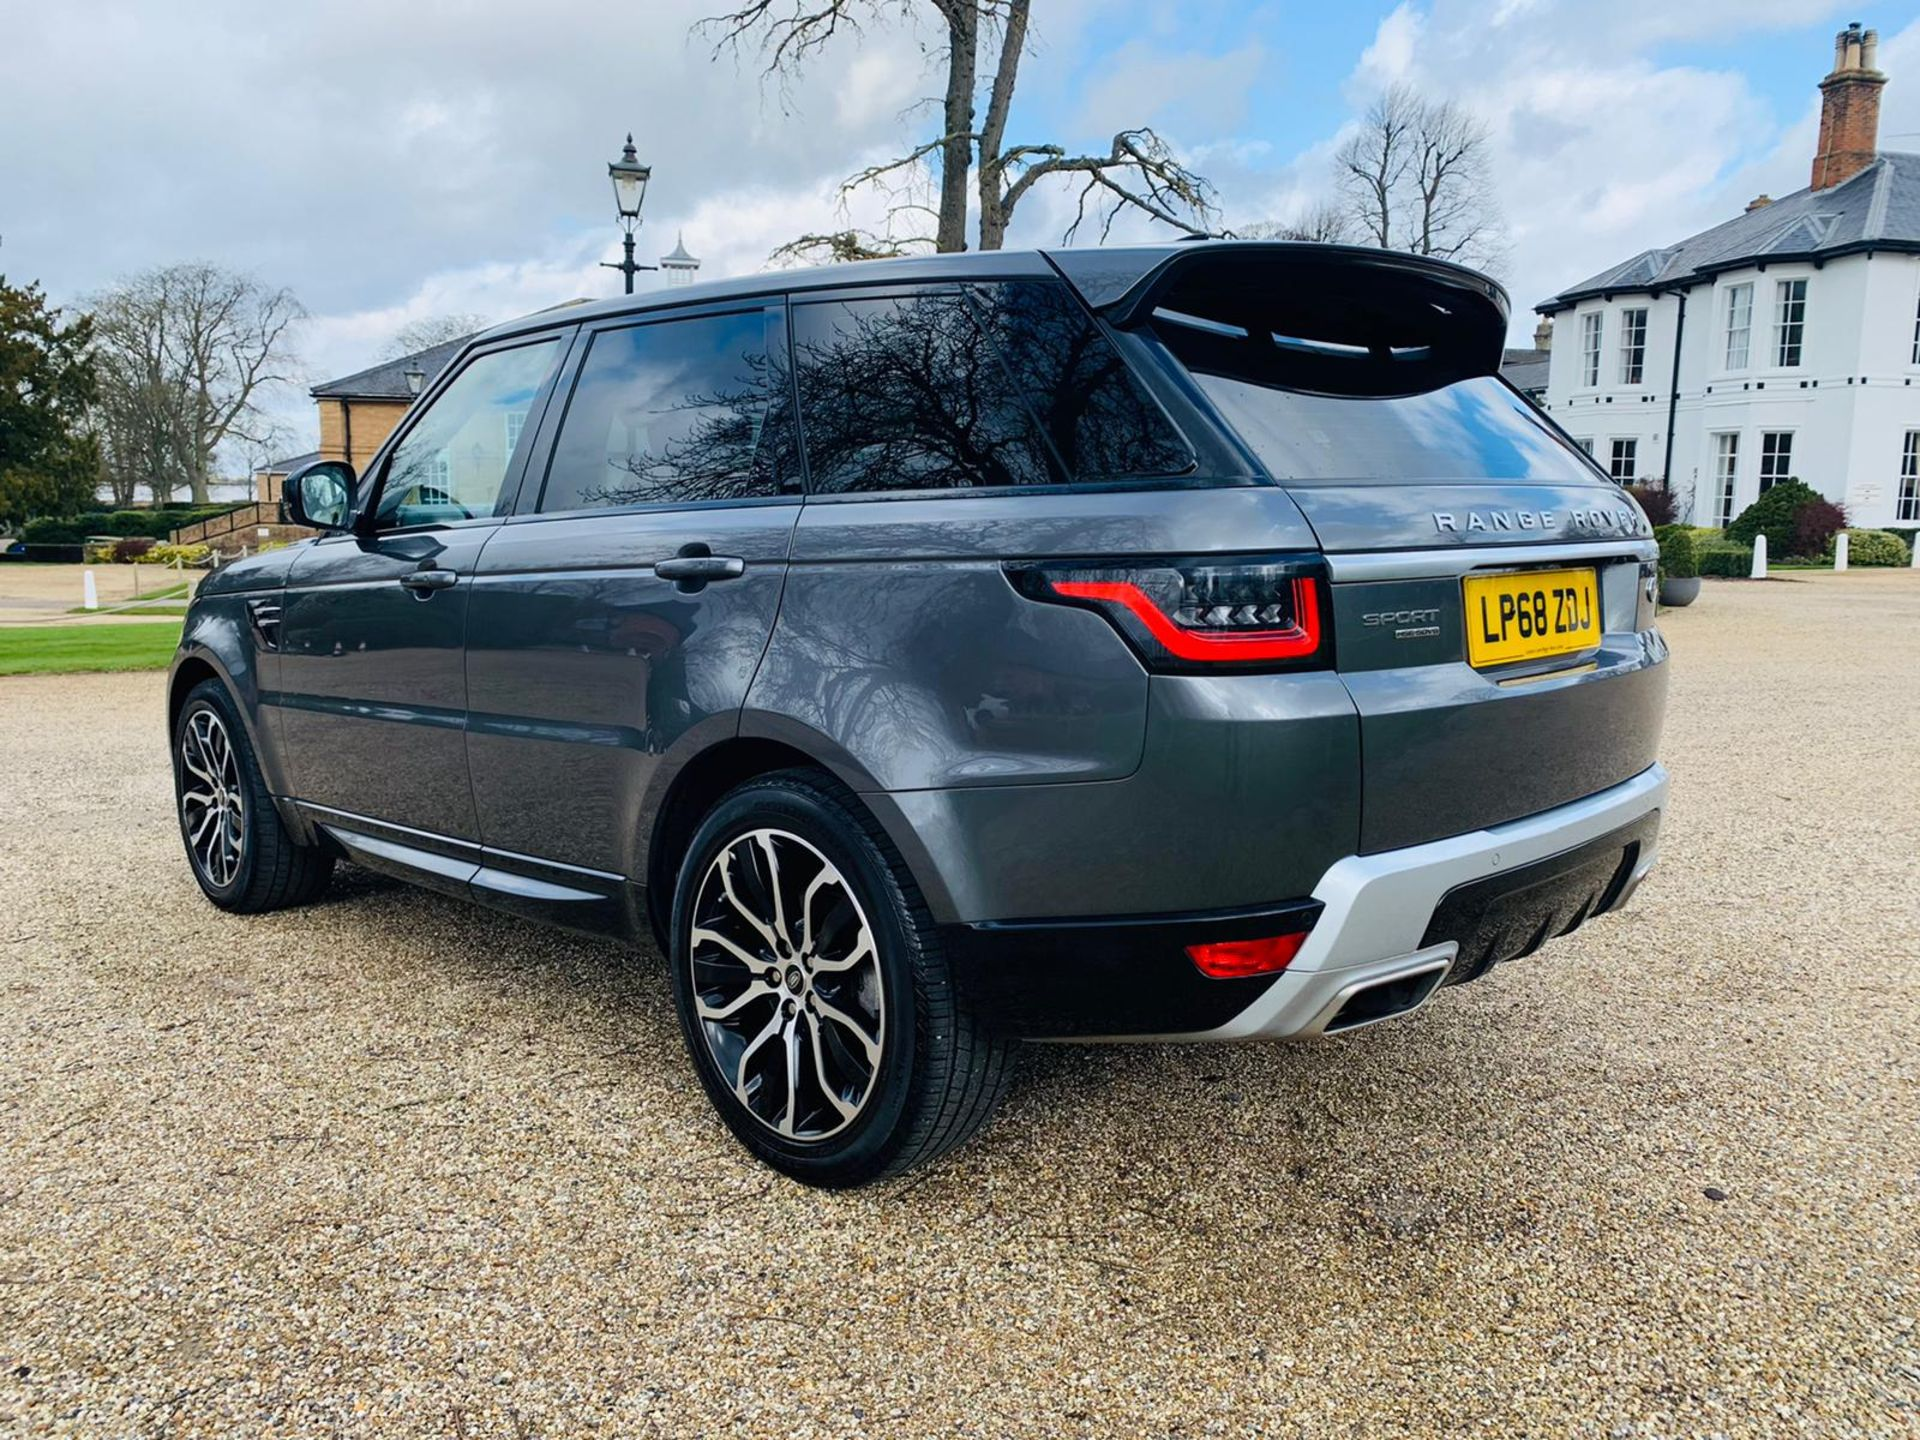 (RESERVE MET) Range Rover Sport 3.0 SDV6 HSE Auto - 2019 - 1 Keeper From New - Virtual Cockpit - - Image 5 of 42